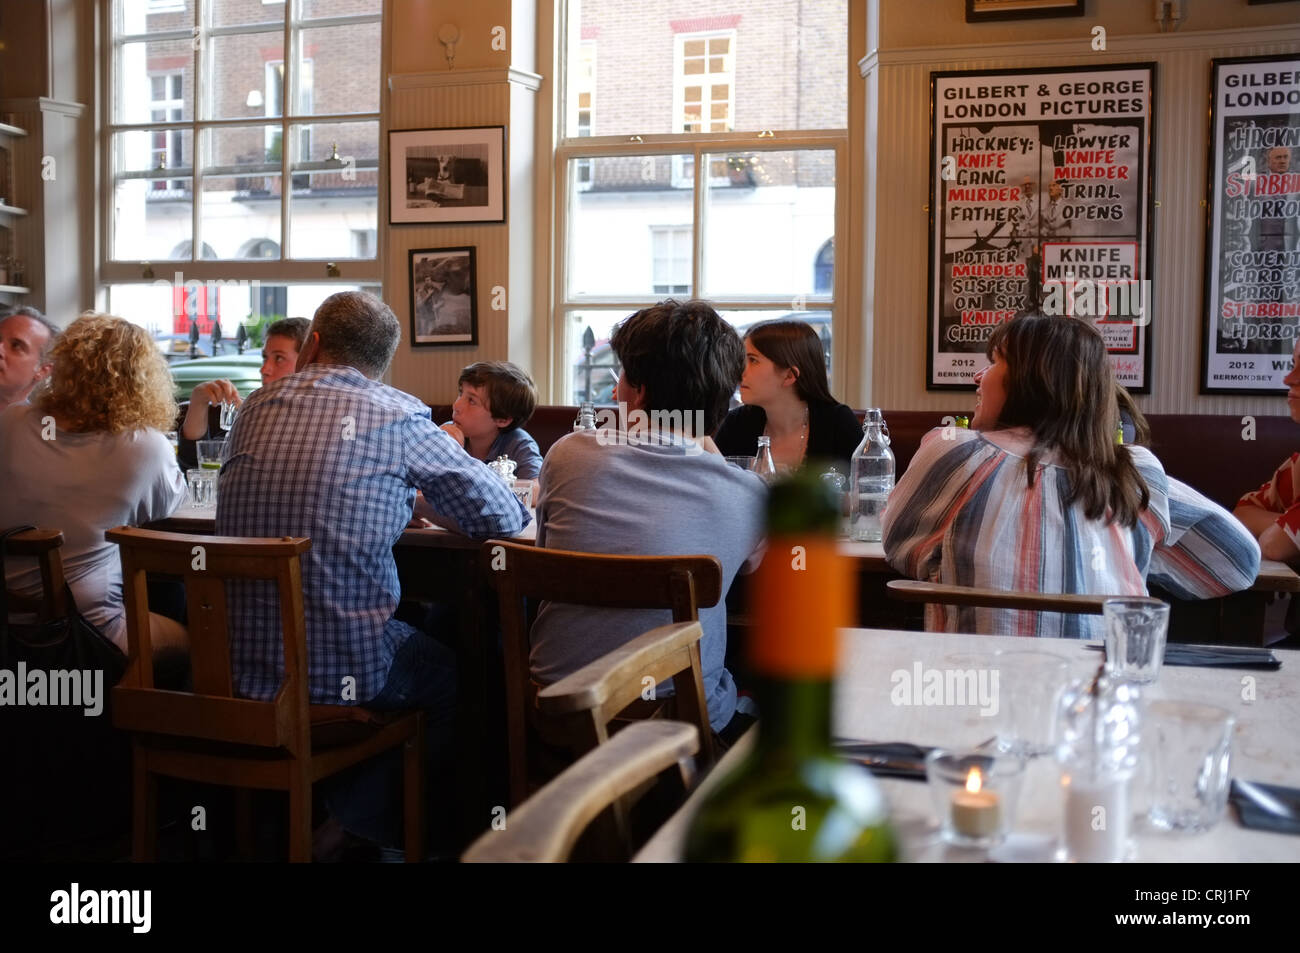 The Wellington gastropub in Crawford Street, Marylebone London W1 - Stock Image